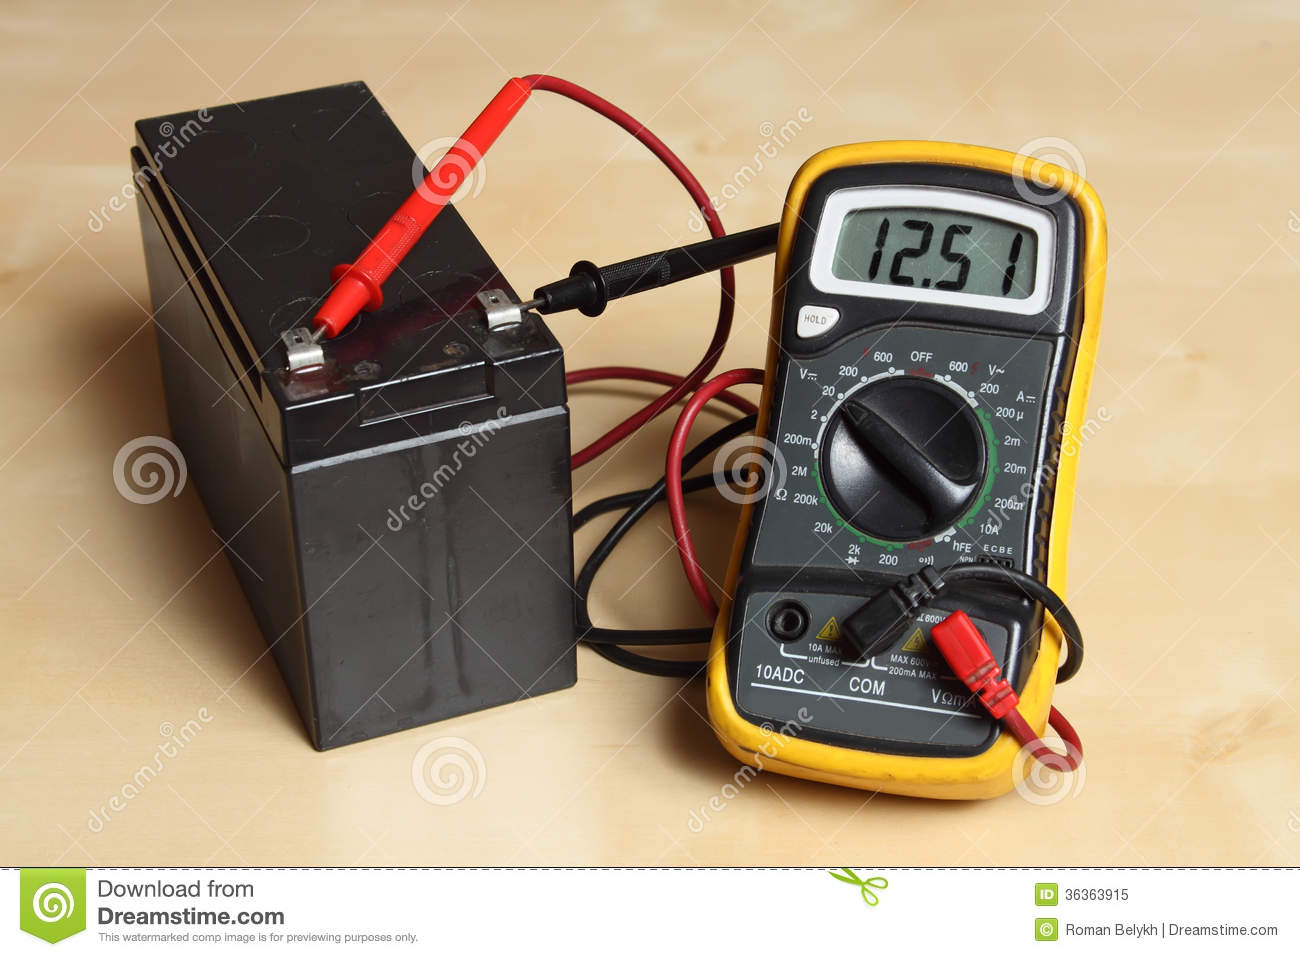 How To Check The Car Battery Voltage